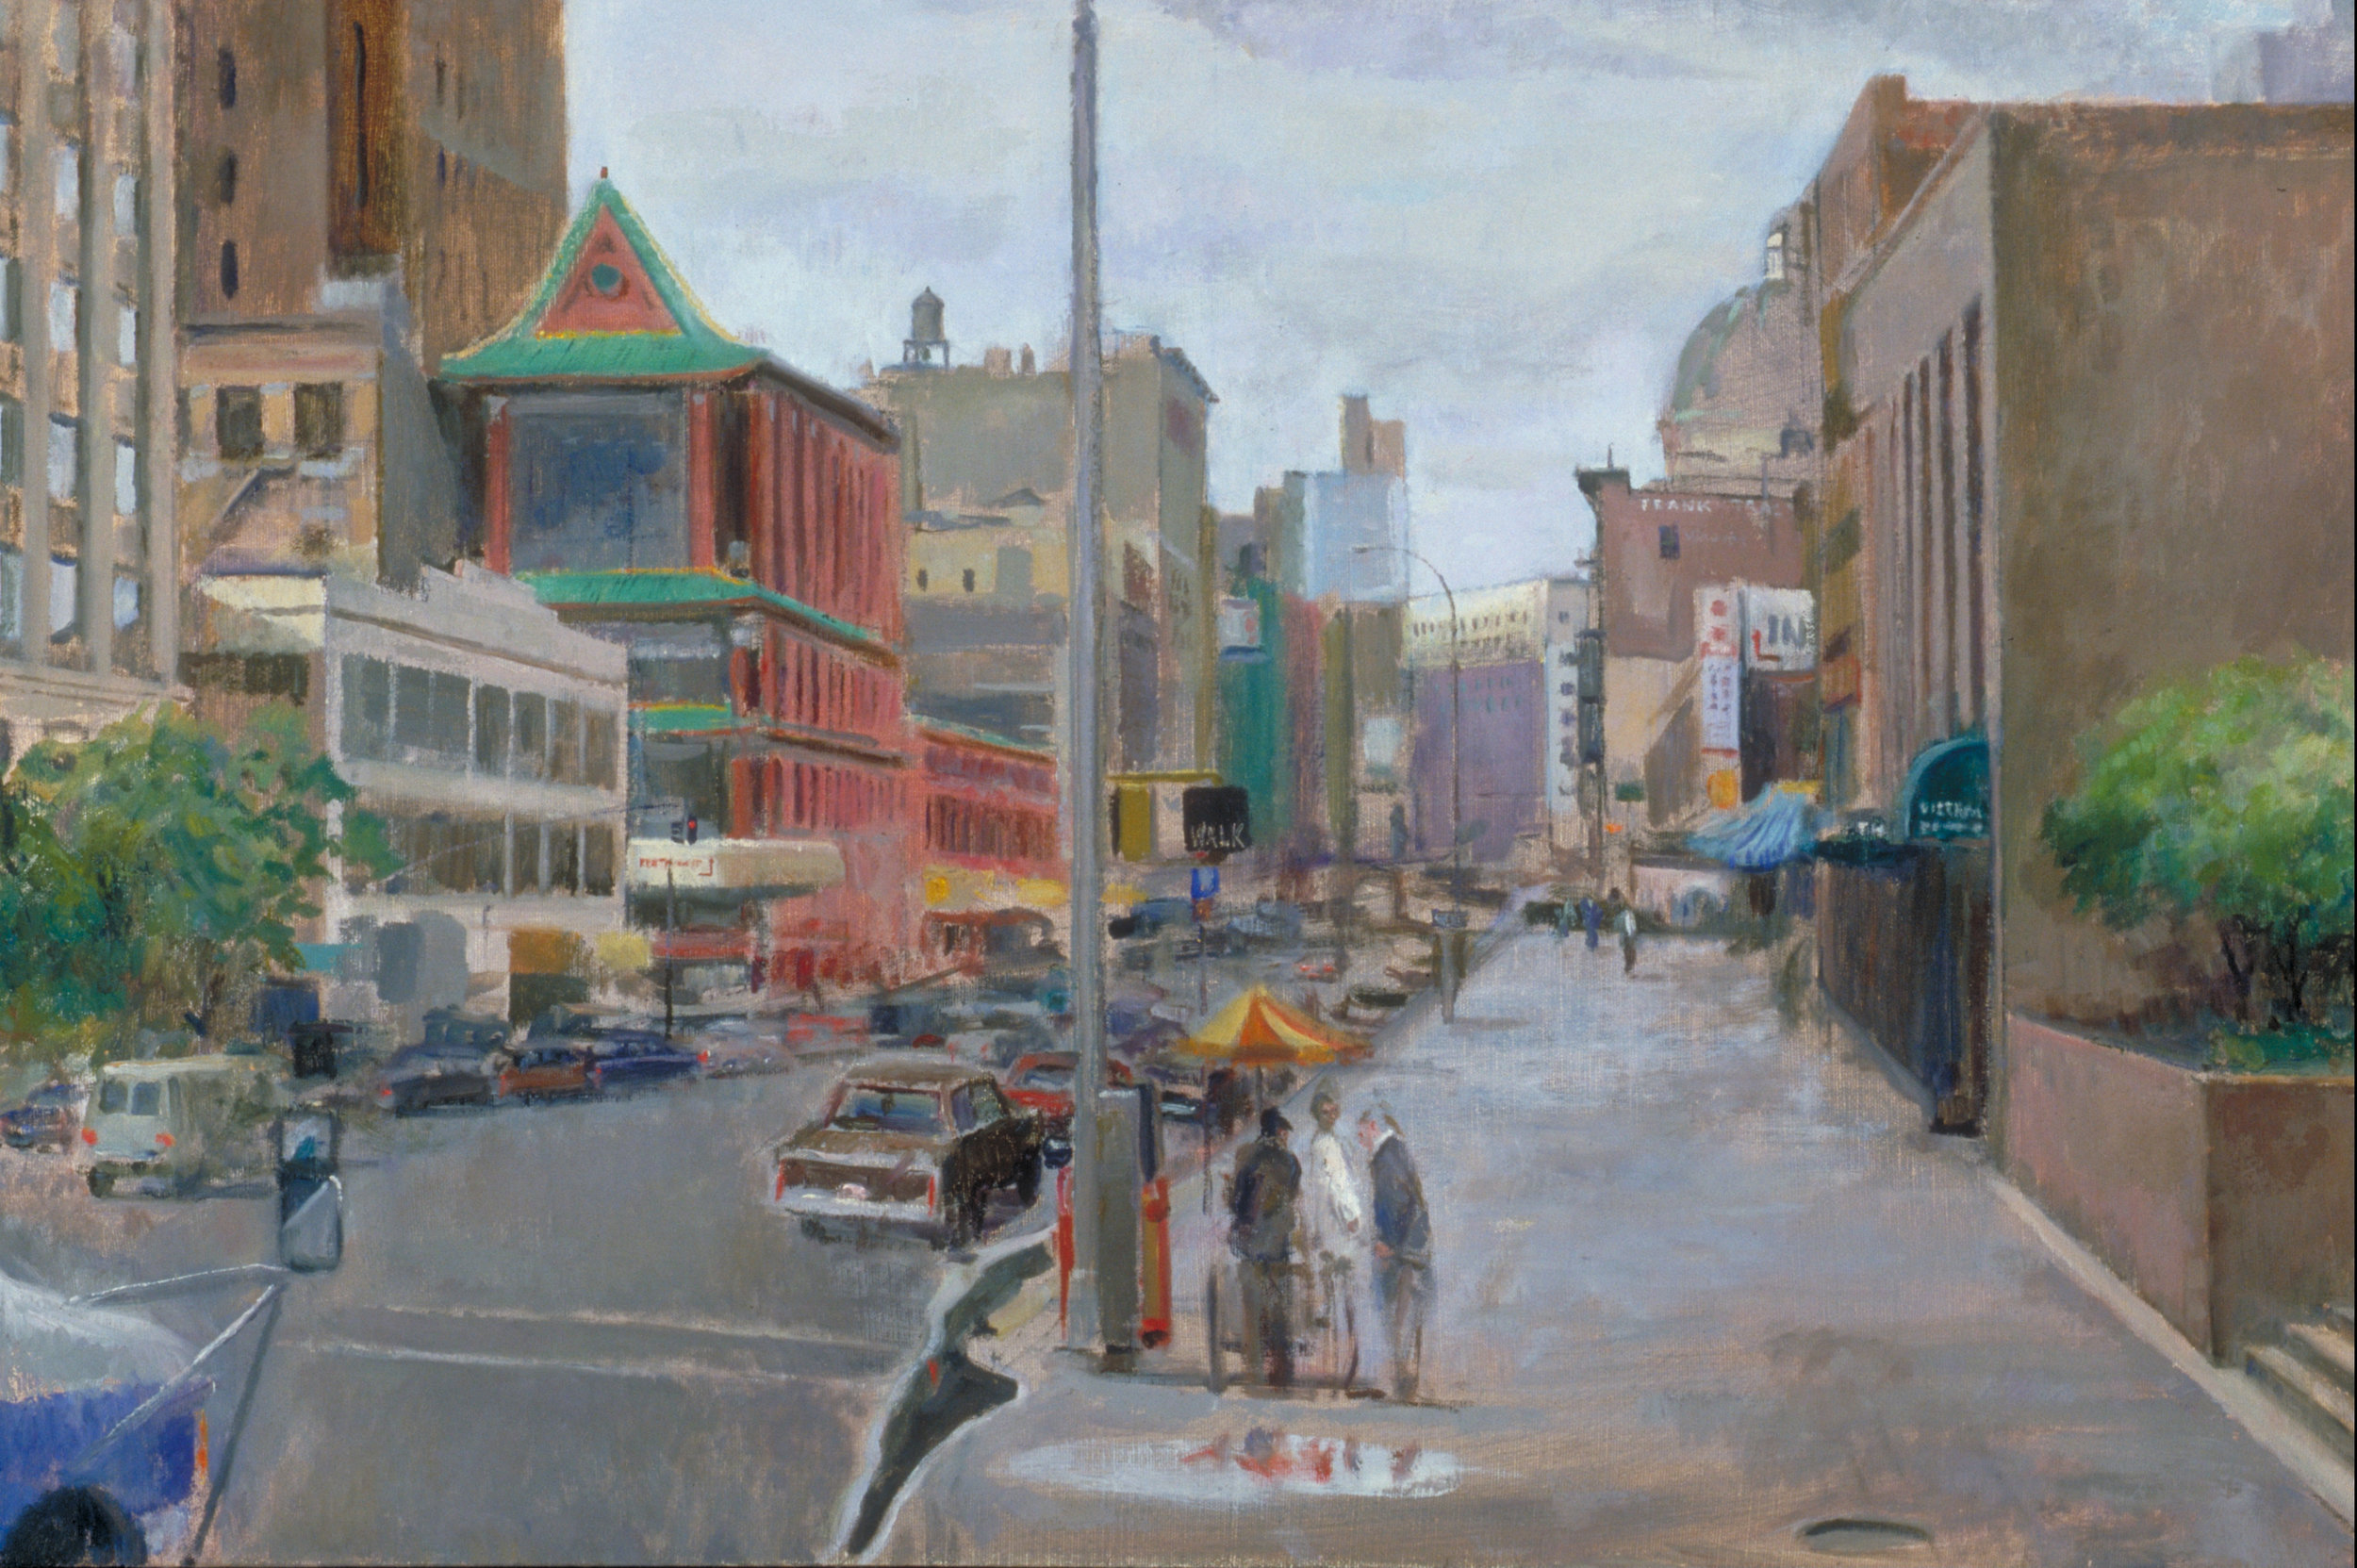 "China Town, 24"" x 36"", oil on linen"